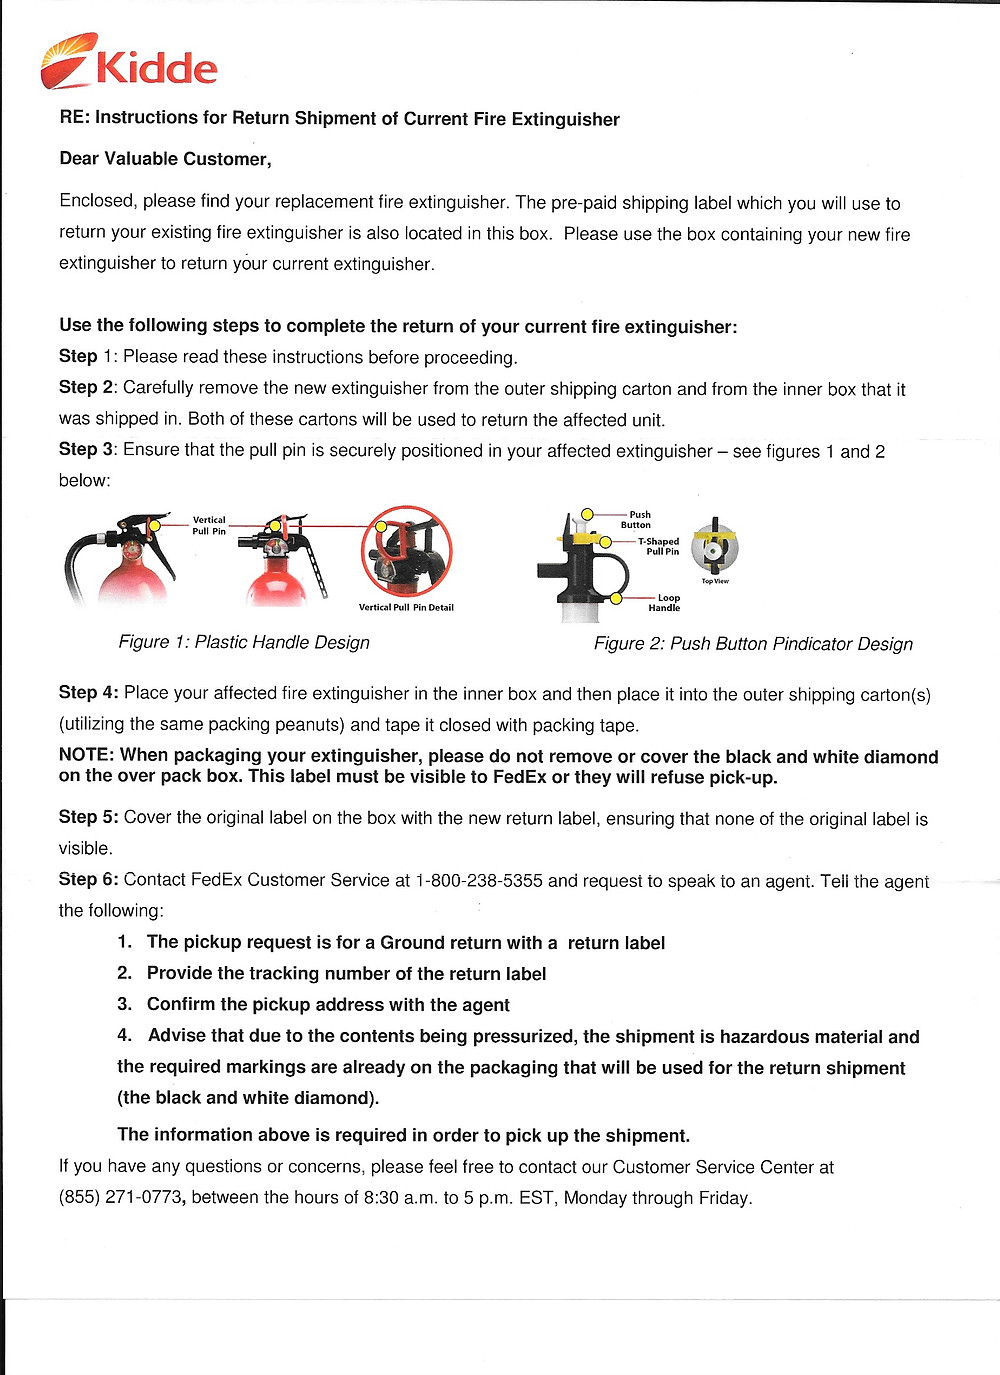 Kidde Fire Extinguisher Recall Letter | The Secure Dad